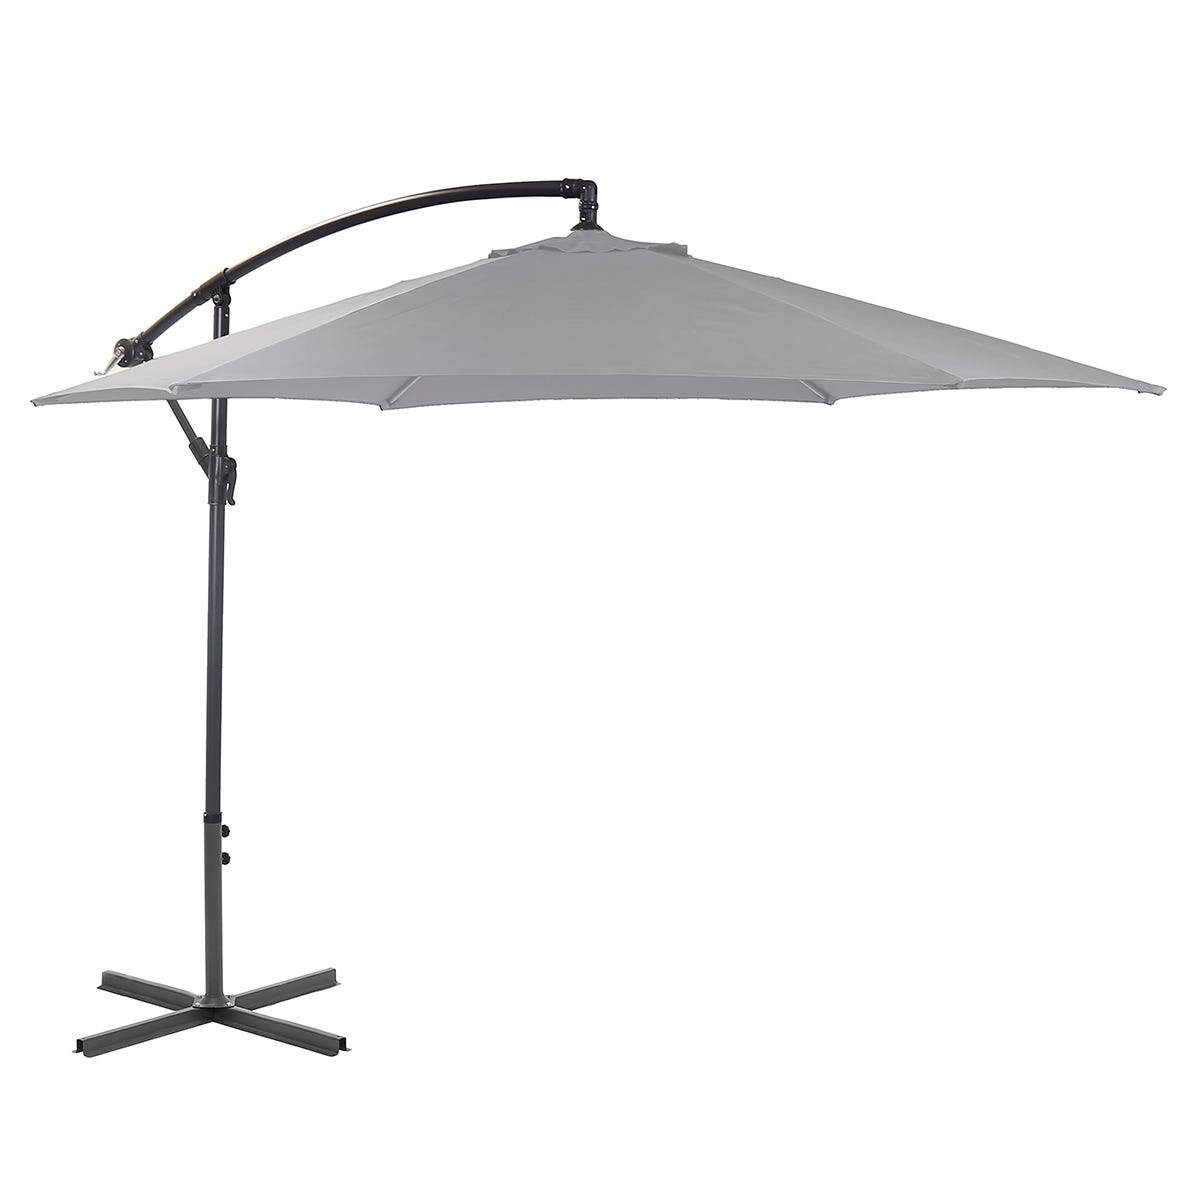 Charles Bentley 3m Cantilever Parasol (base not included)- Grey